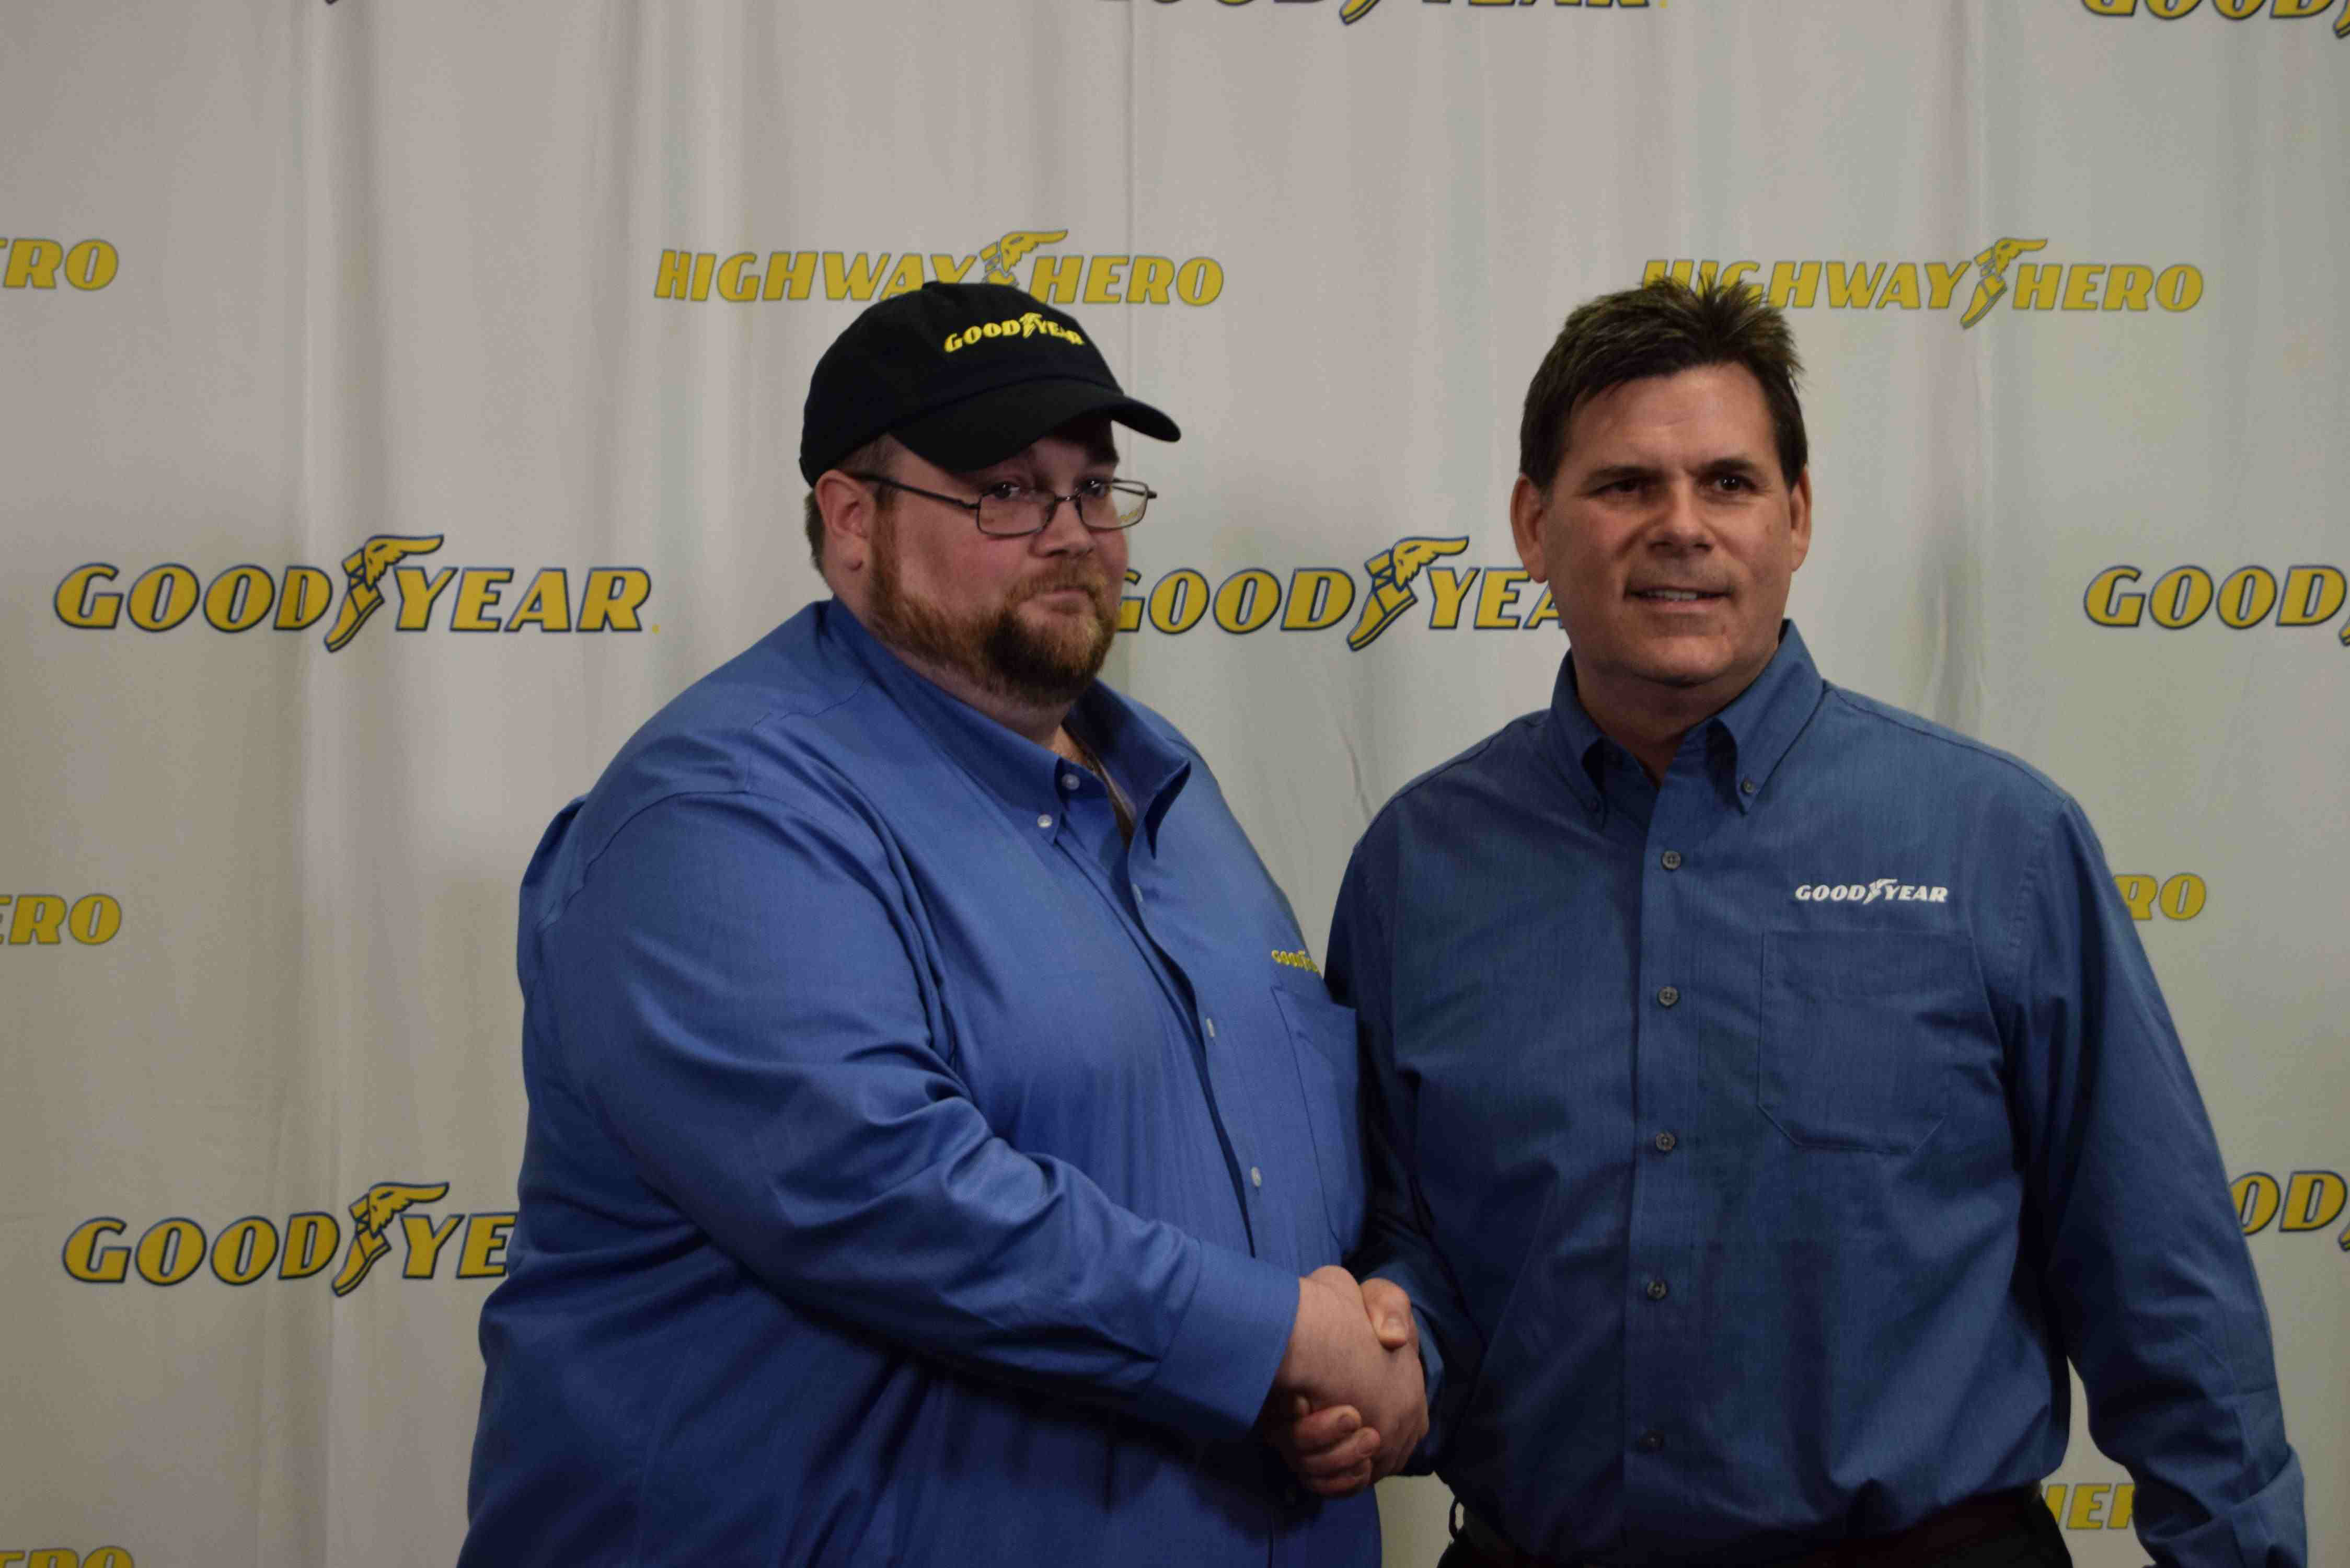 Goodyear Highway Hero nomination period continues through November 29